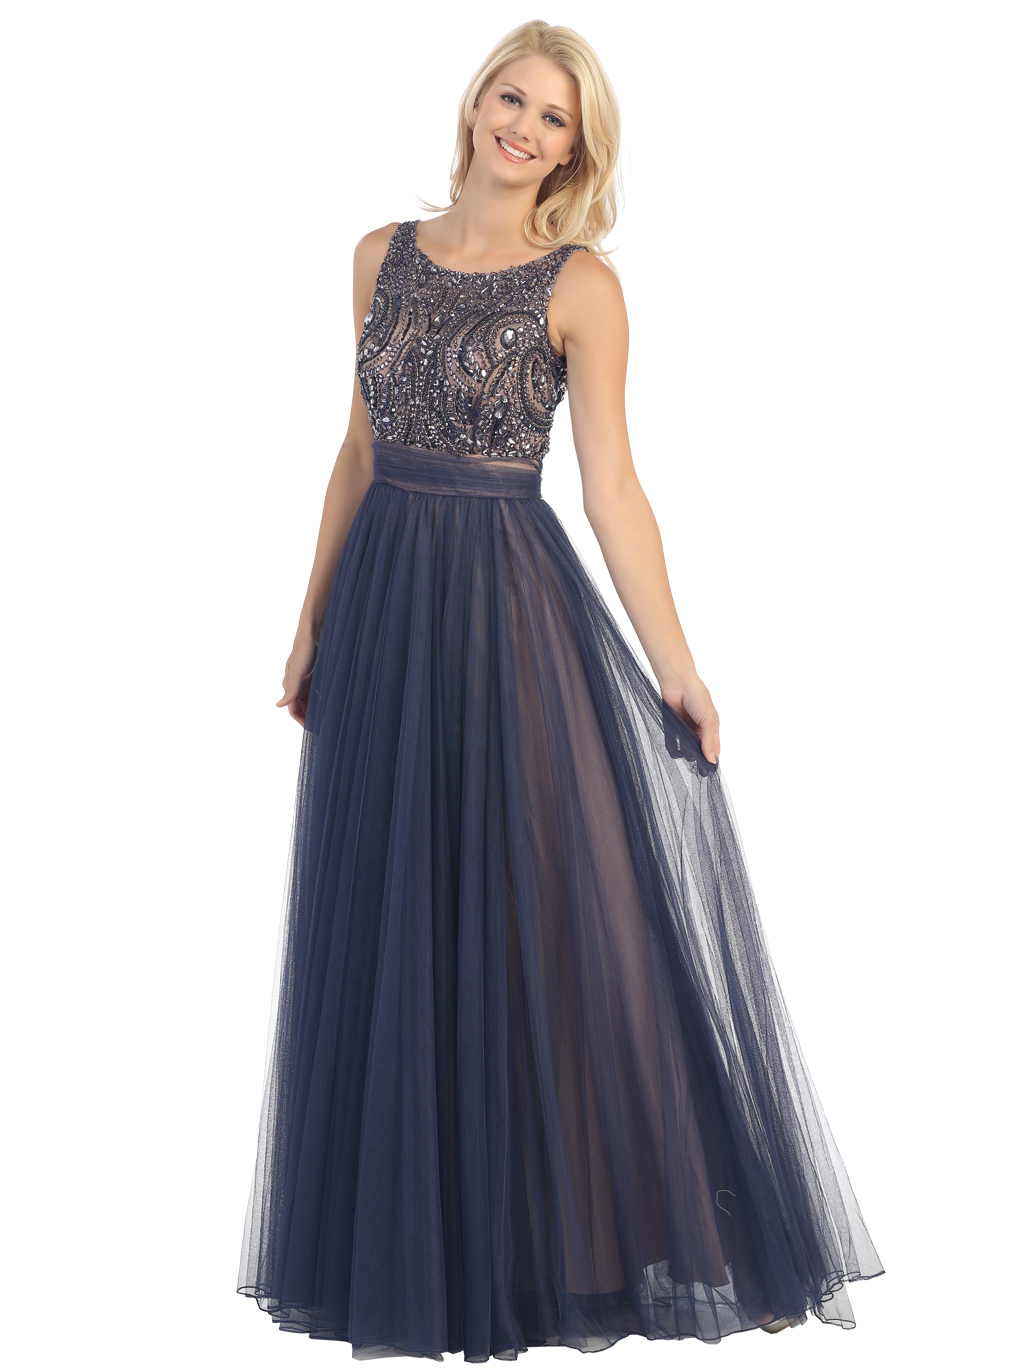 Beaded Overlay Two Tone Evening Gown | Sung Boutique L.A.